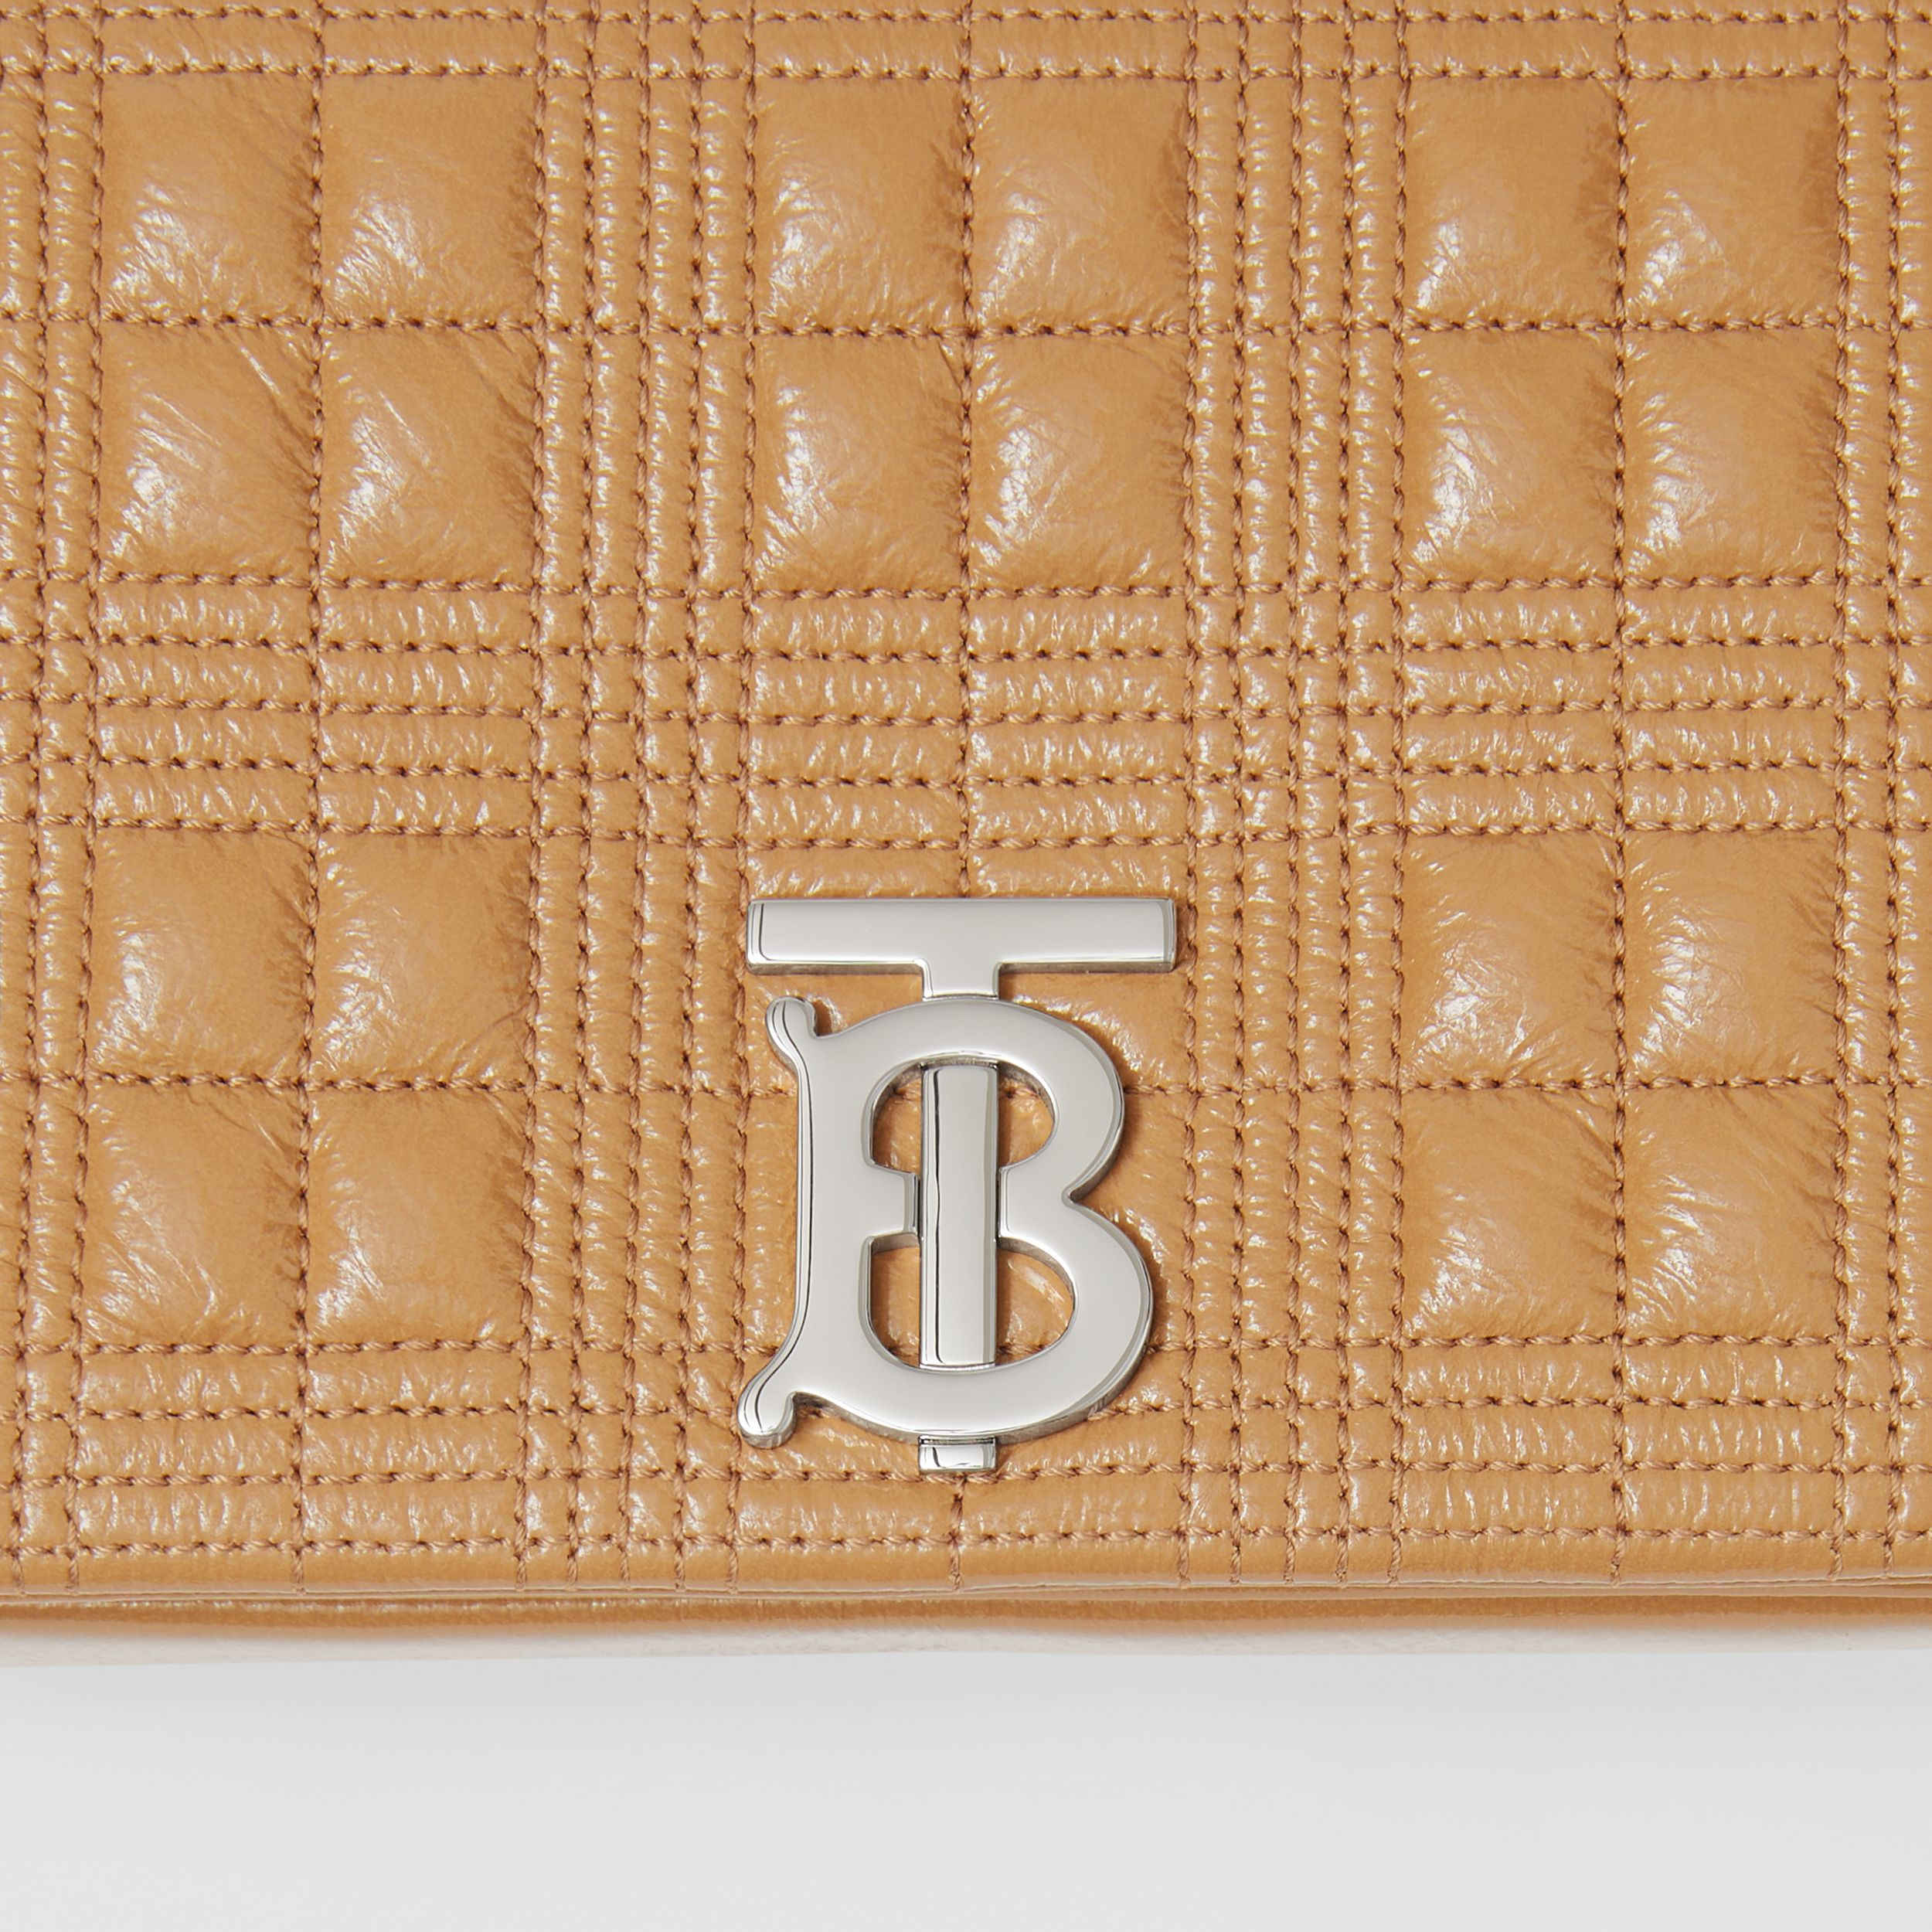 Small Quilted Lambskin Lola Bag in Camel - Women | Burberry - 2